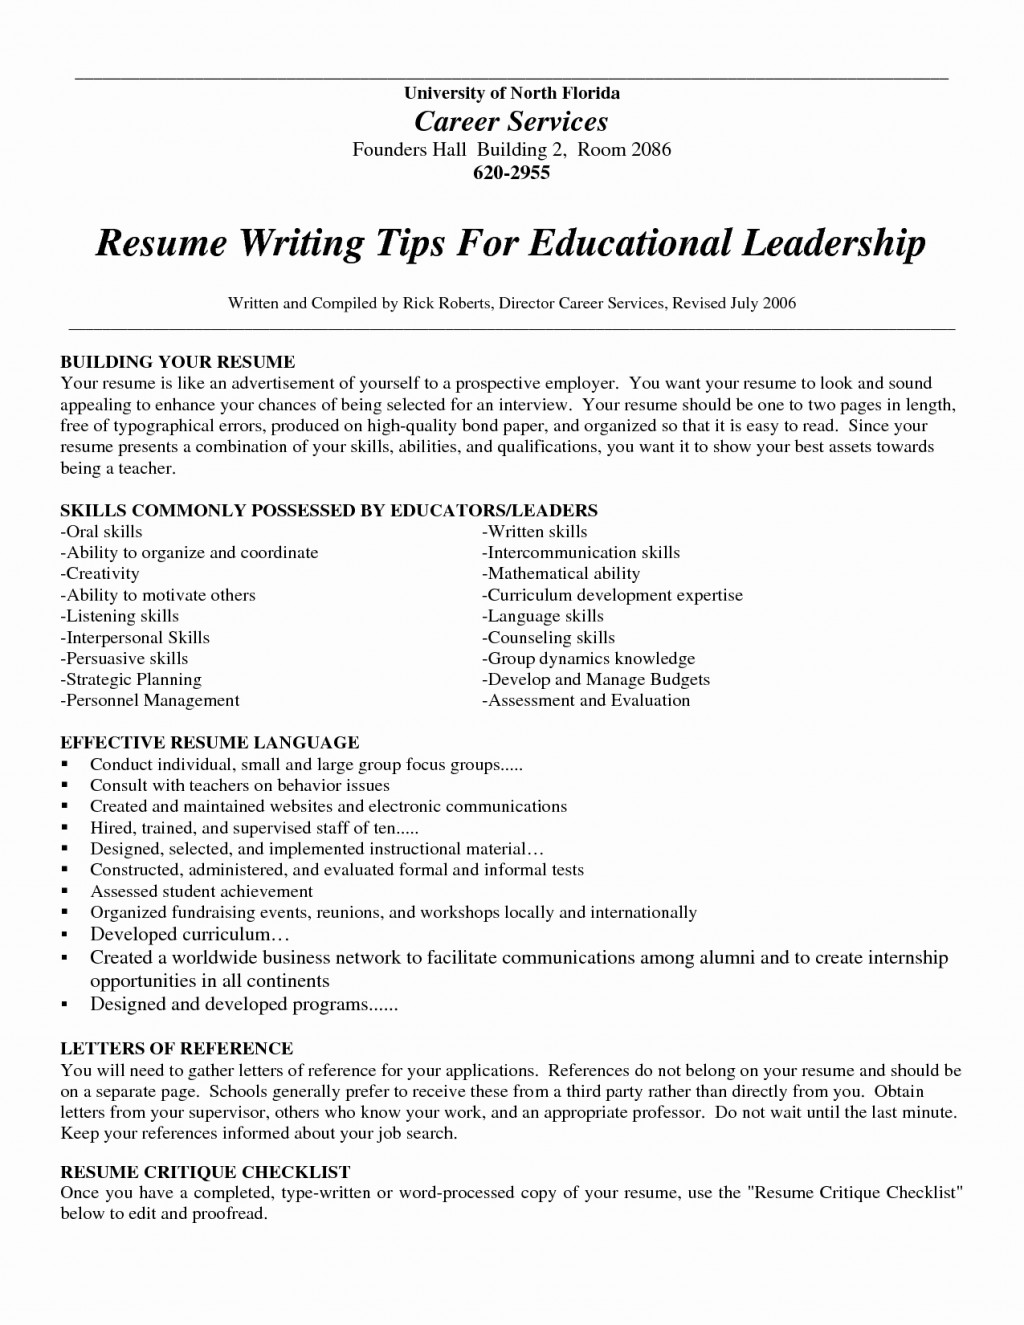 002 Essay Professor Resume Format For Assistant Job Awesome Pro Life On College Indent Cultur Writing Amazing Teaching My In French Large